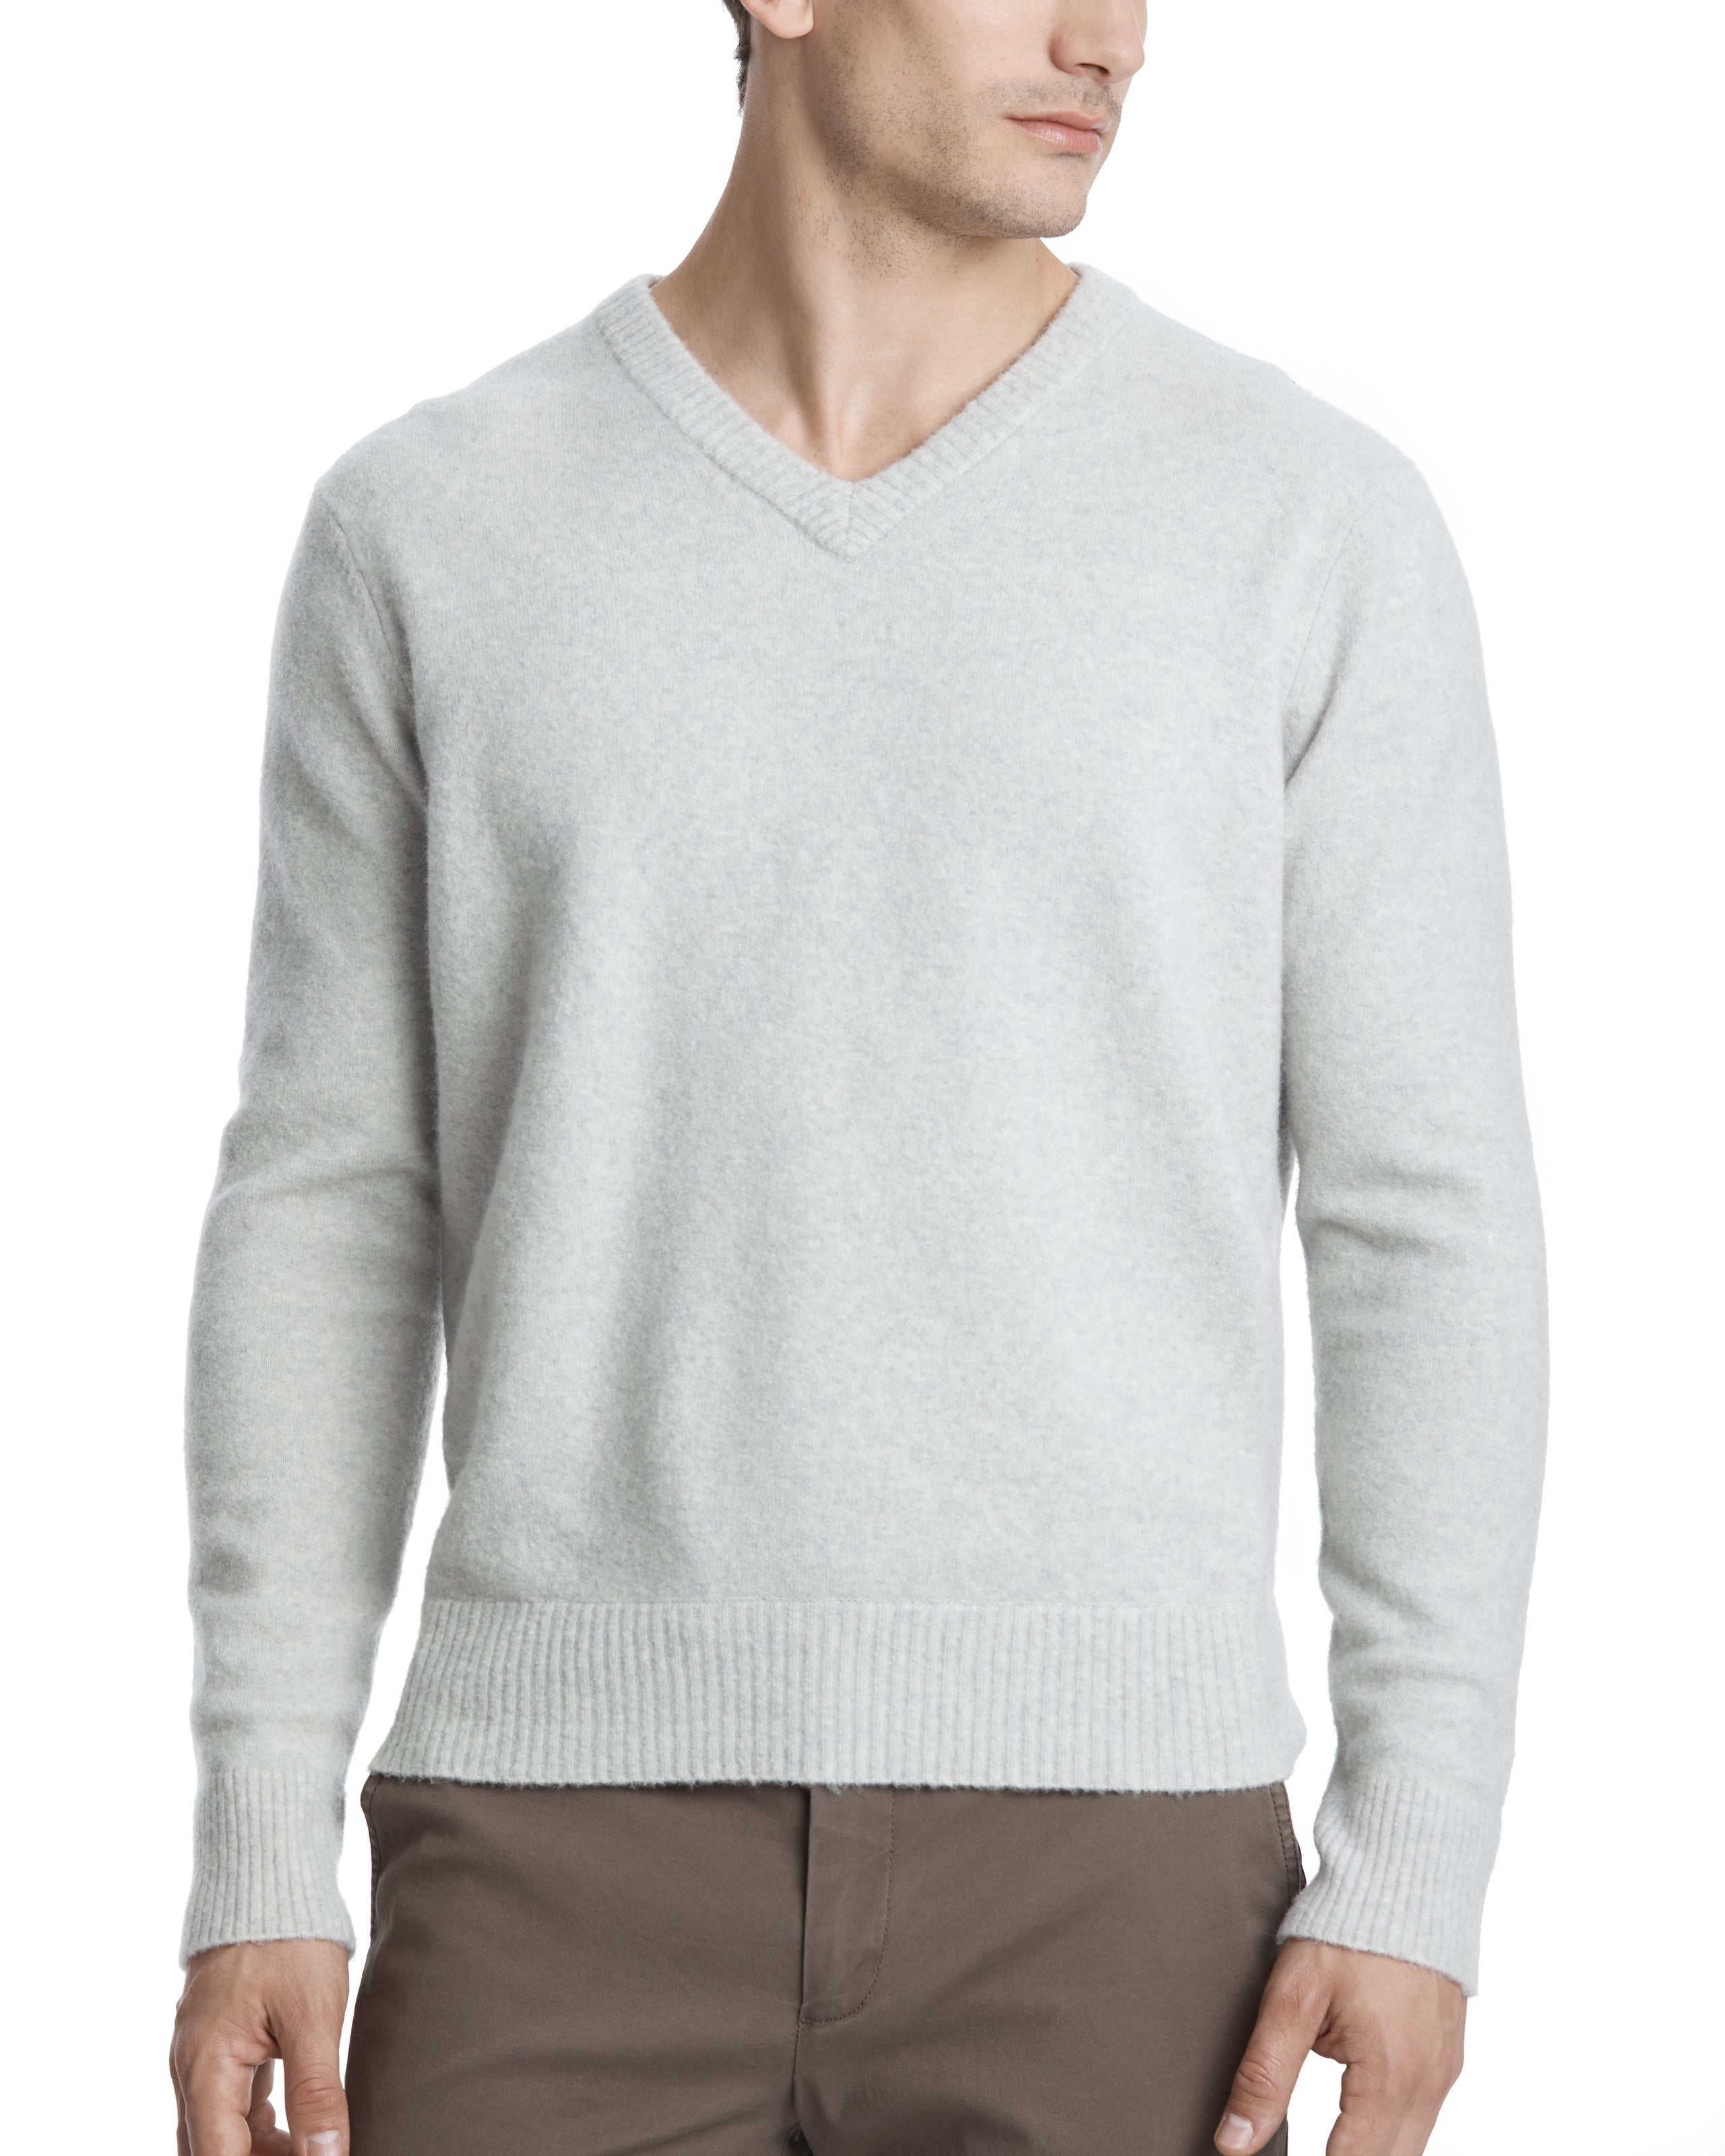 ATM Cashmere Blend V-Neck Sweater